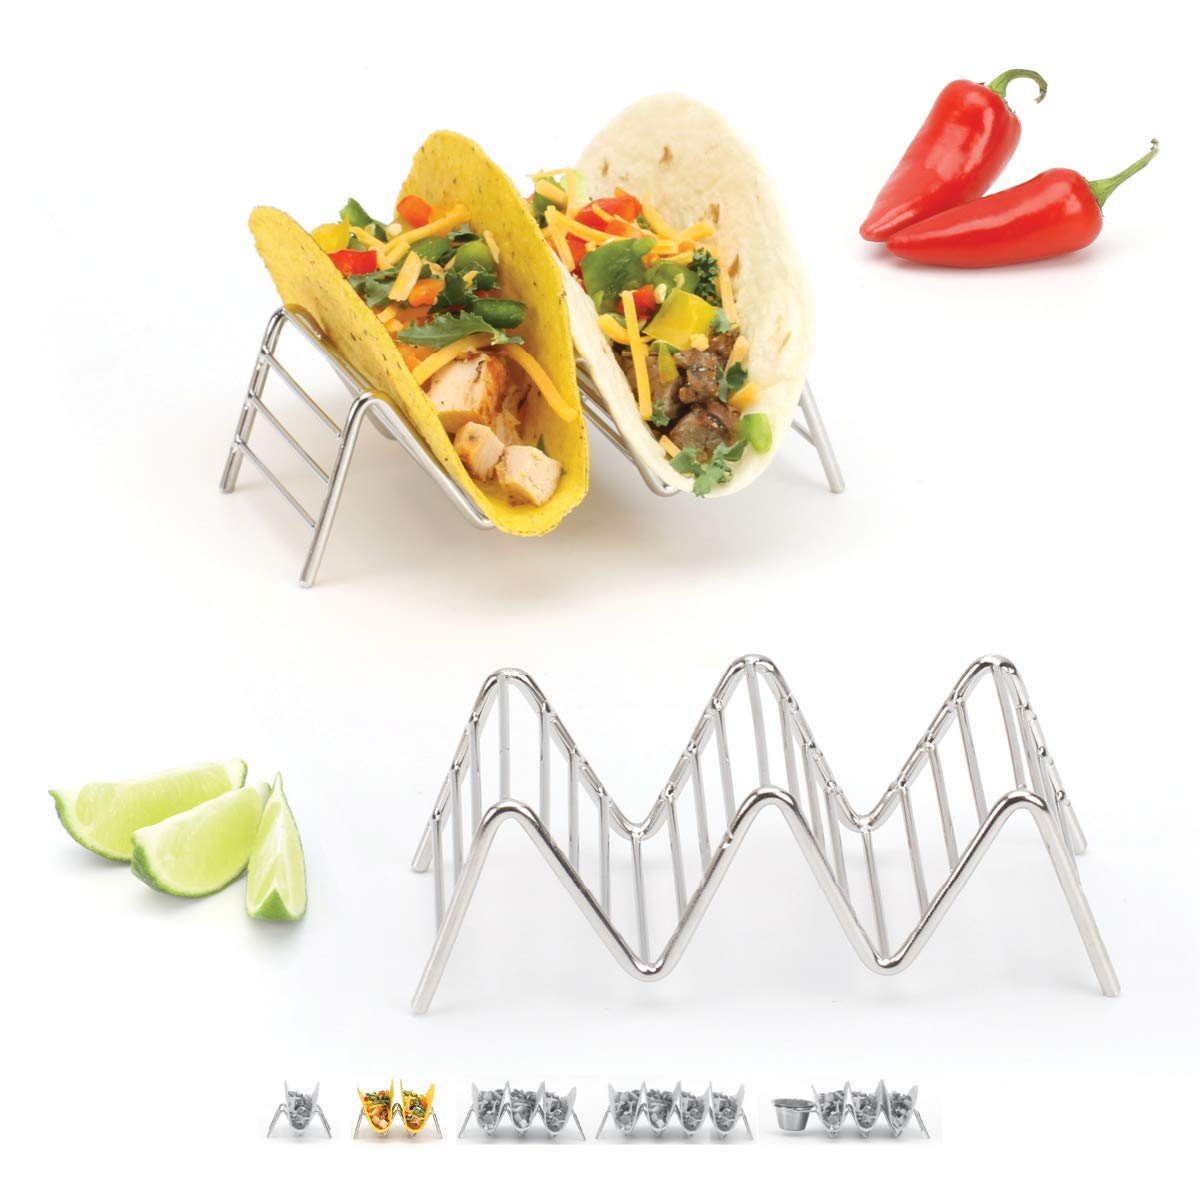 2lbDepot Taco Holder Stand - Chrome Finish - Premium 18/8 Stainless Steel - Holds 2 or 3 Hard Soft Tacos - Five Styles Available - Set of 2 Racks